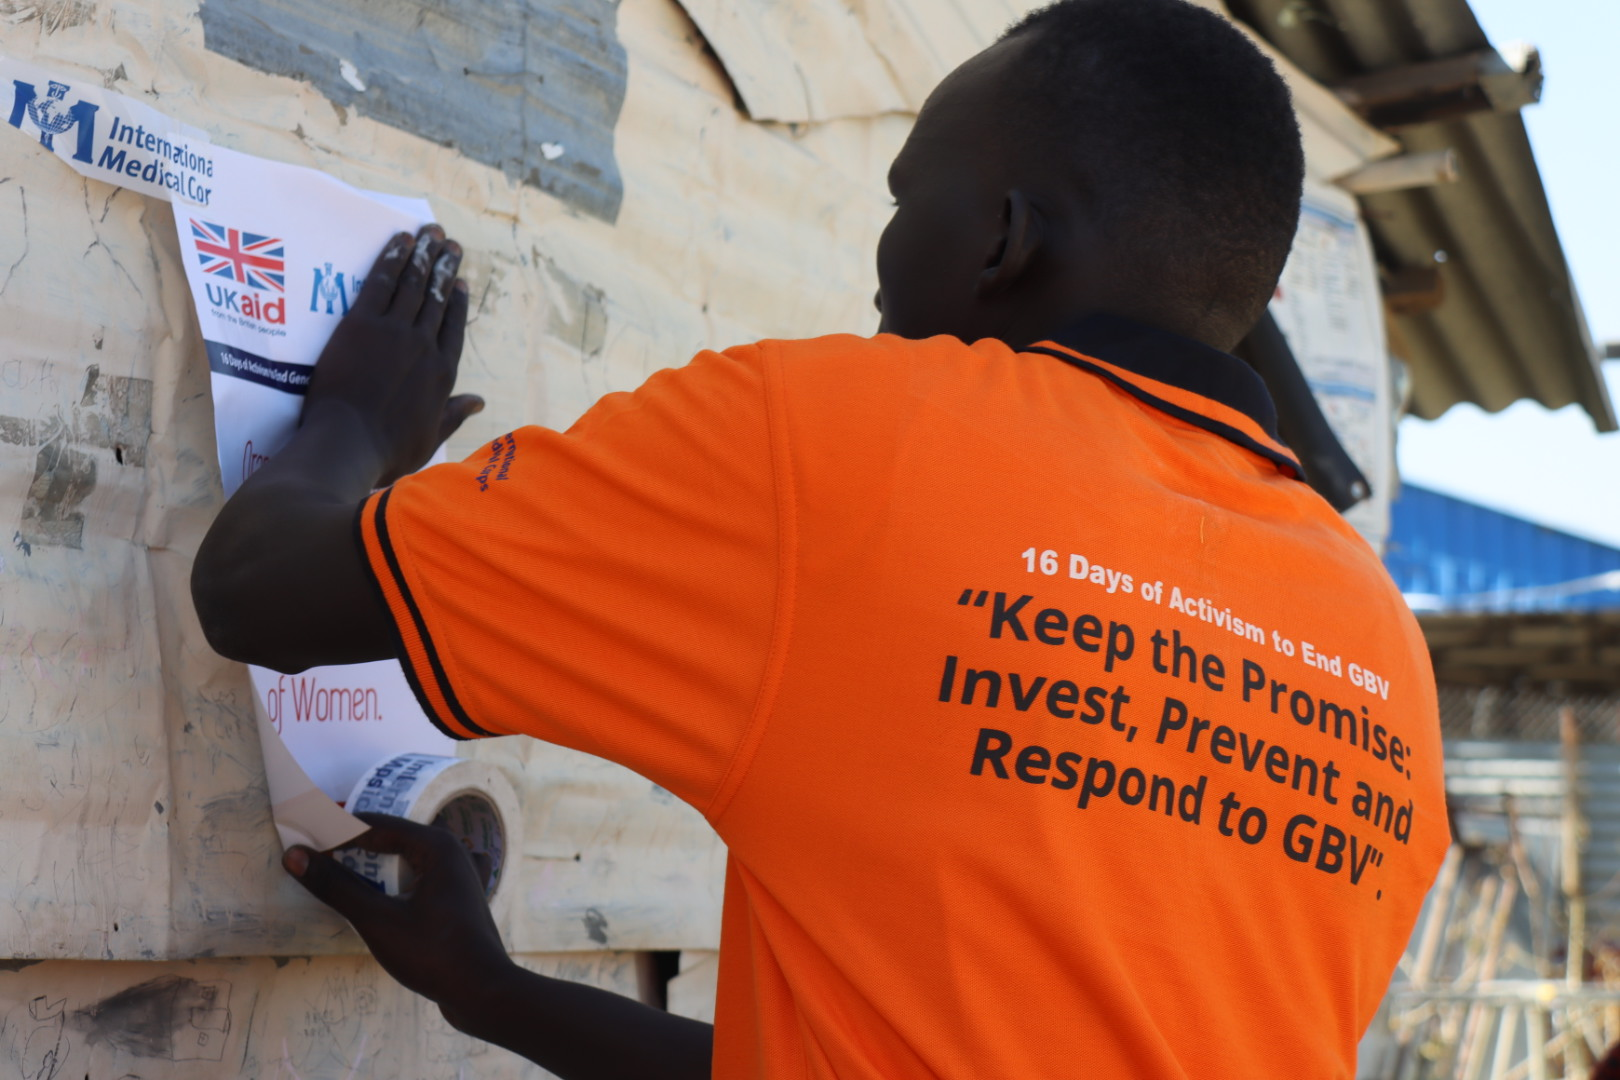 A man in Malakal participates in the 16 Days campaign.